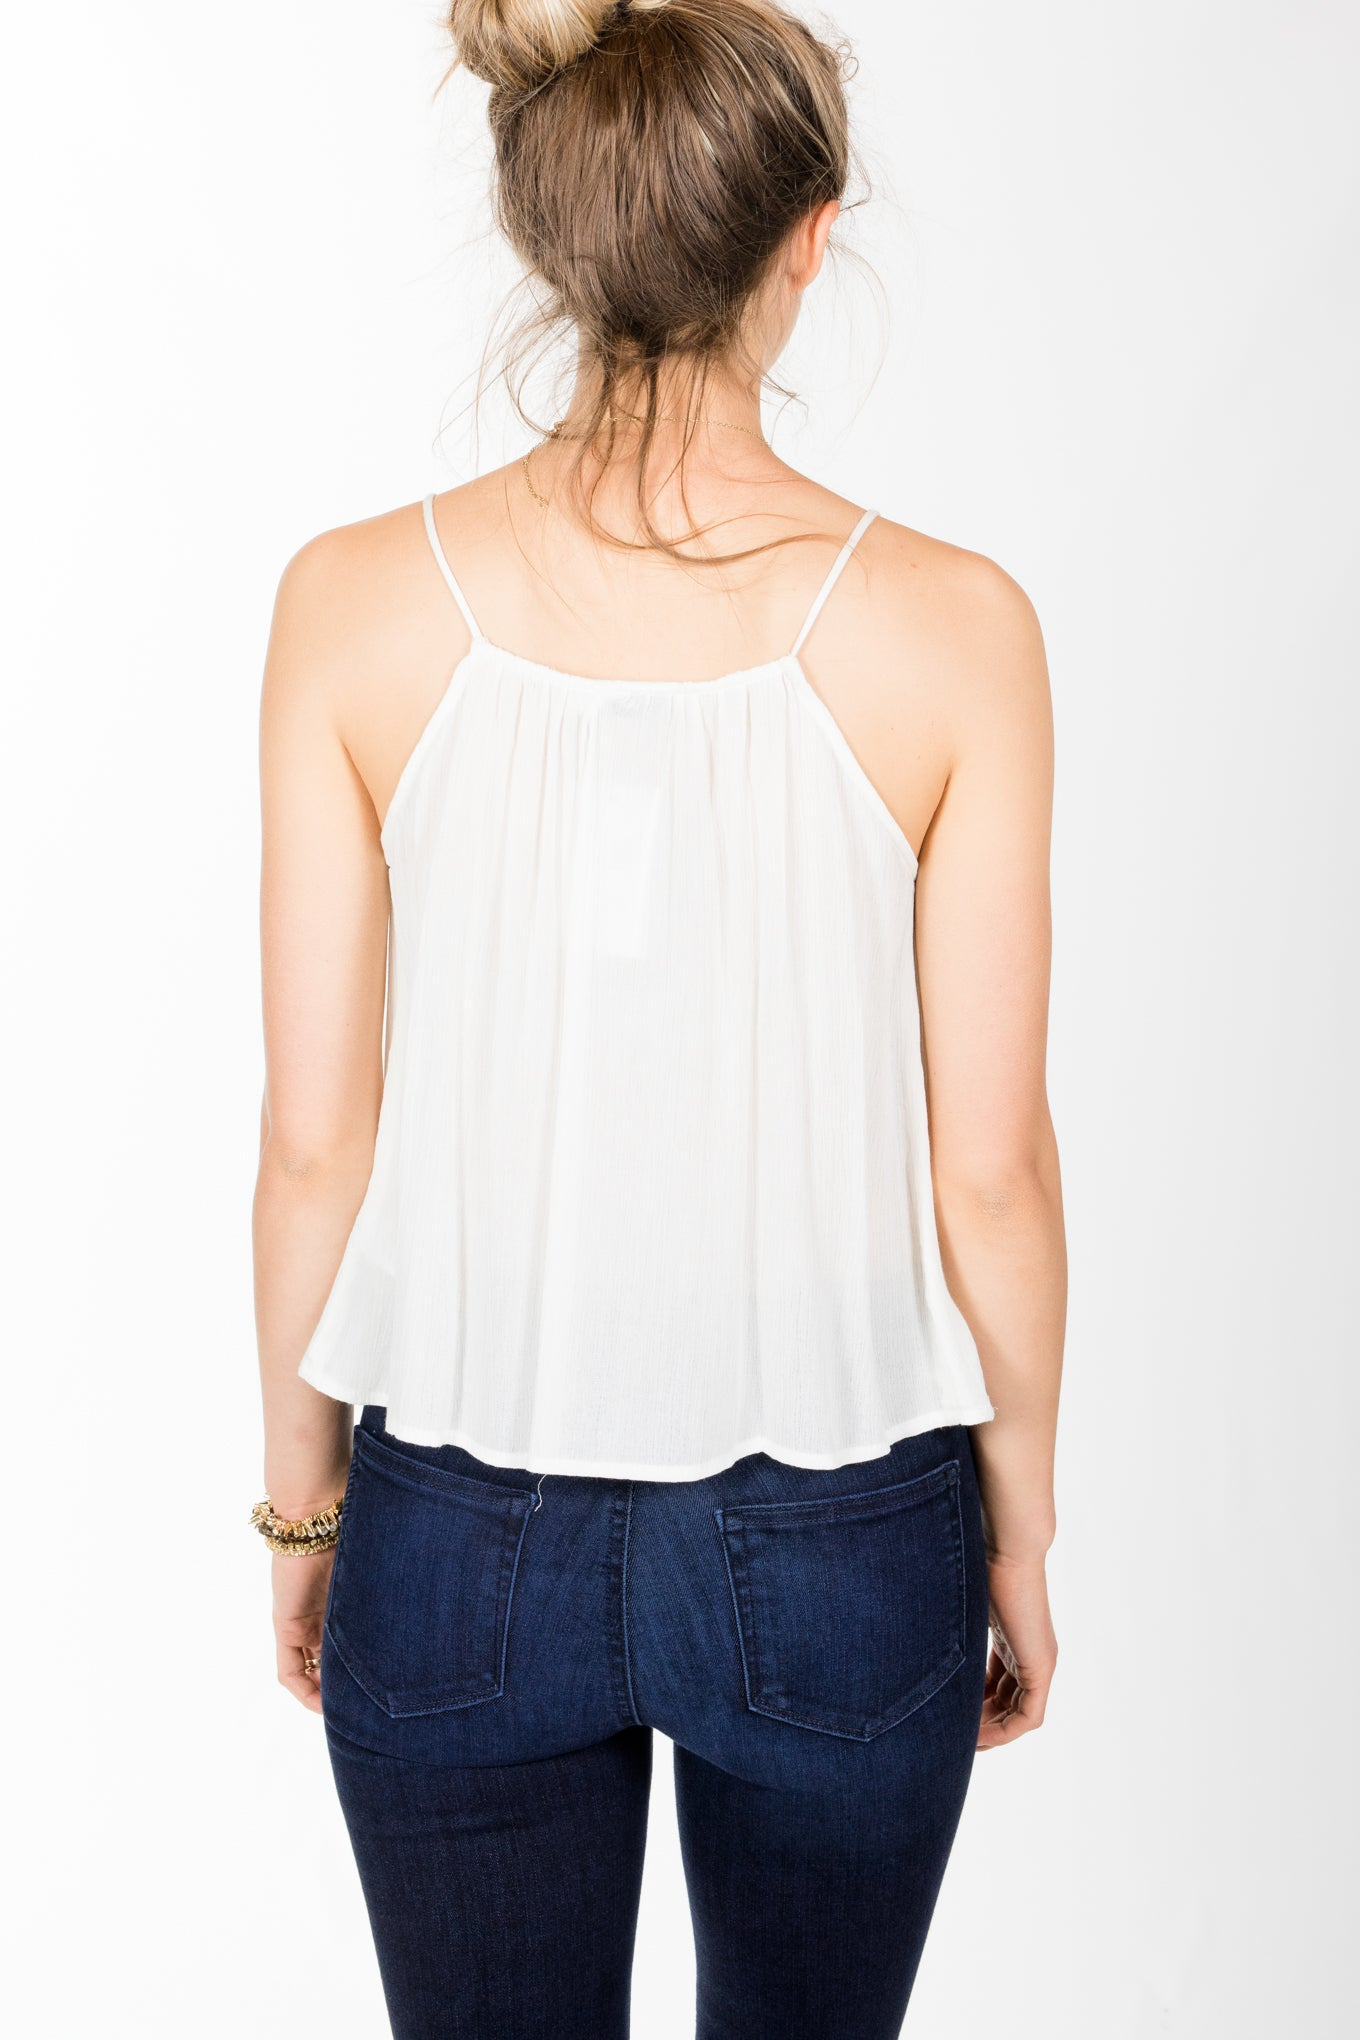 Lush.Libby Top.Vintage Cream